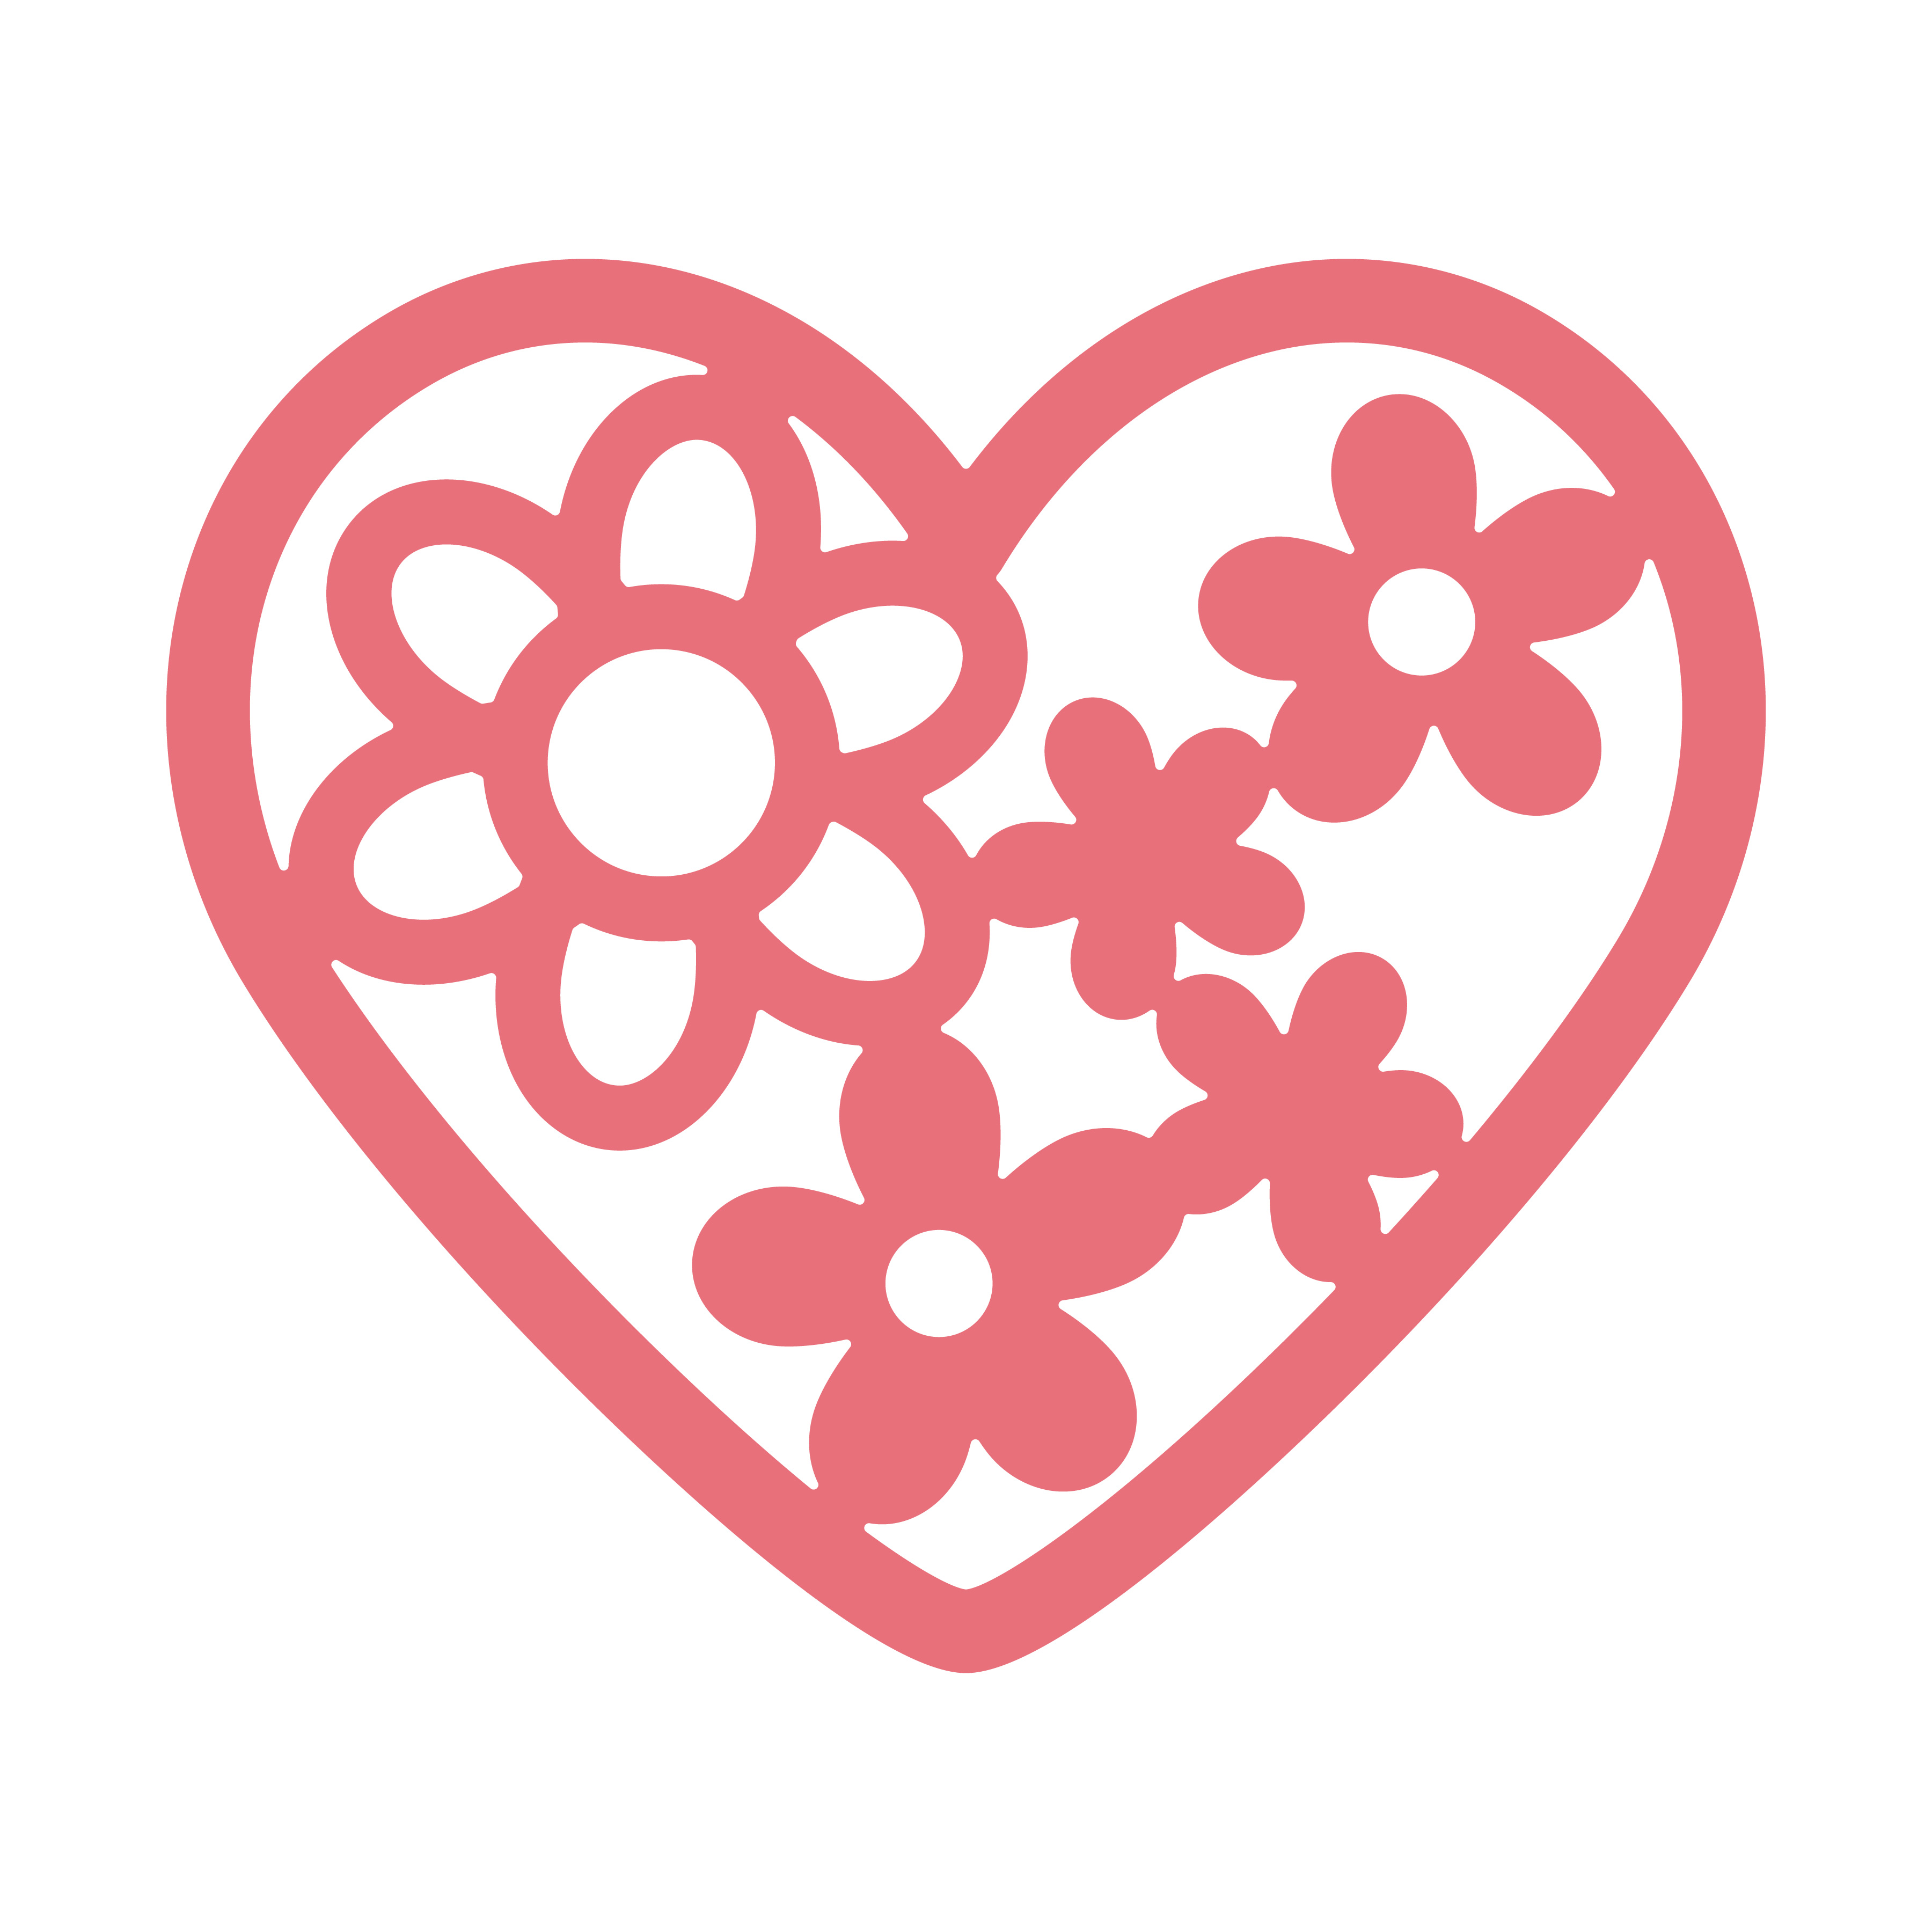 Floral heart Free SVG